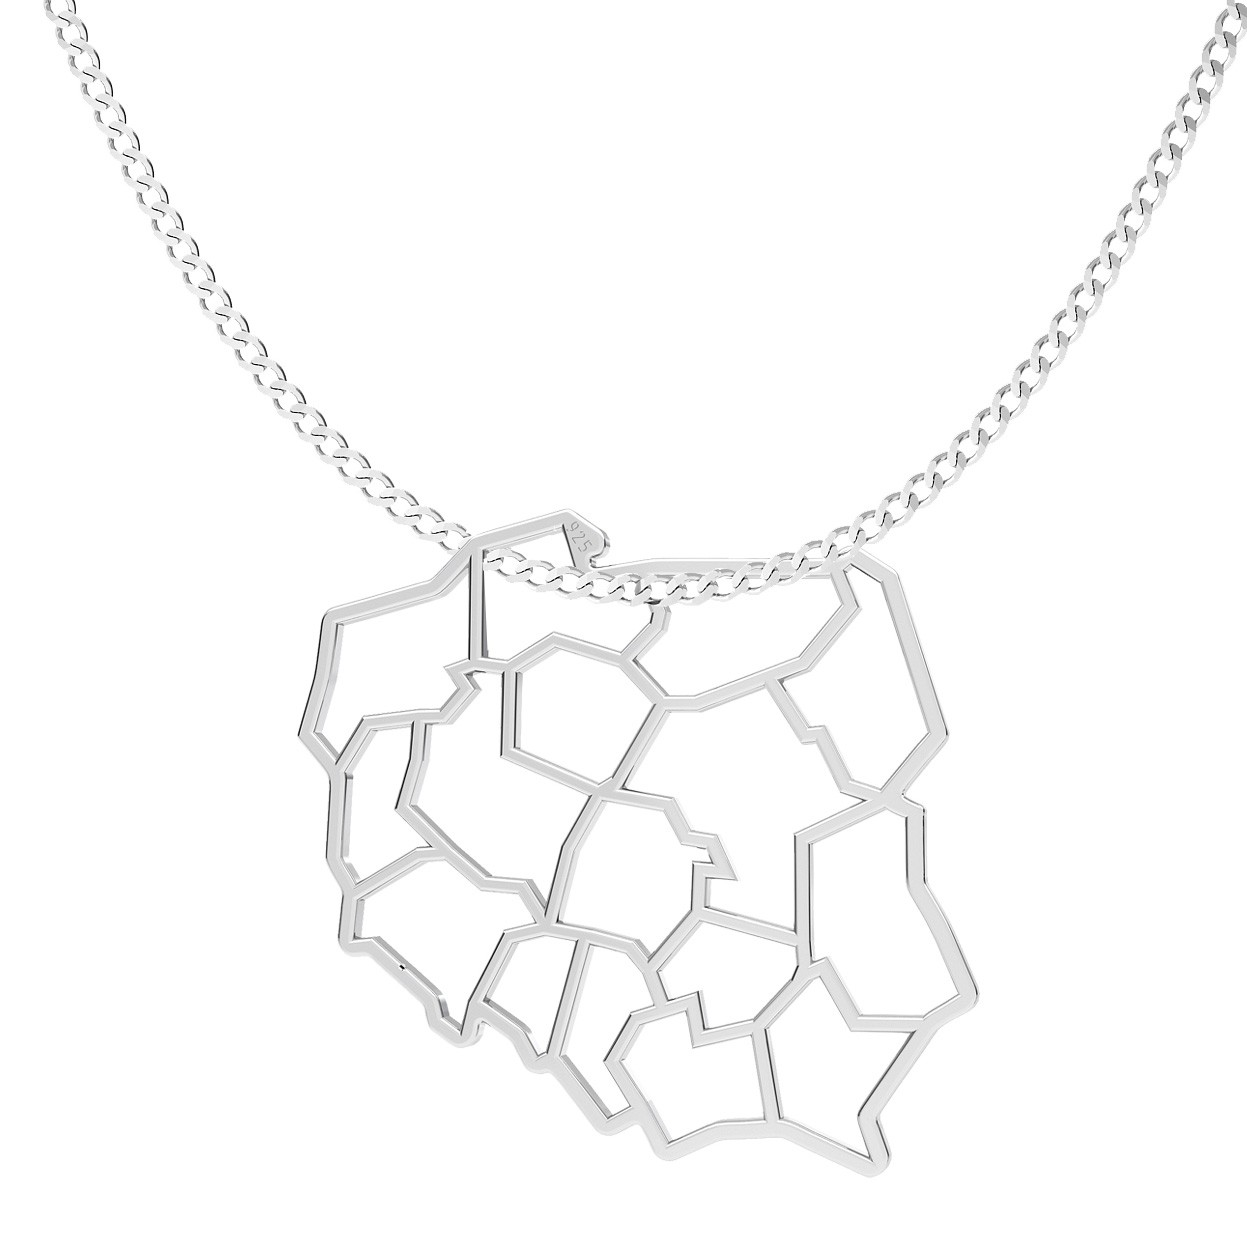 Dumbbell necklace sterling silver 925